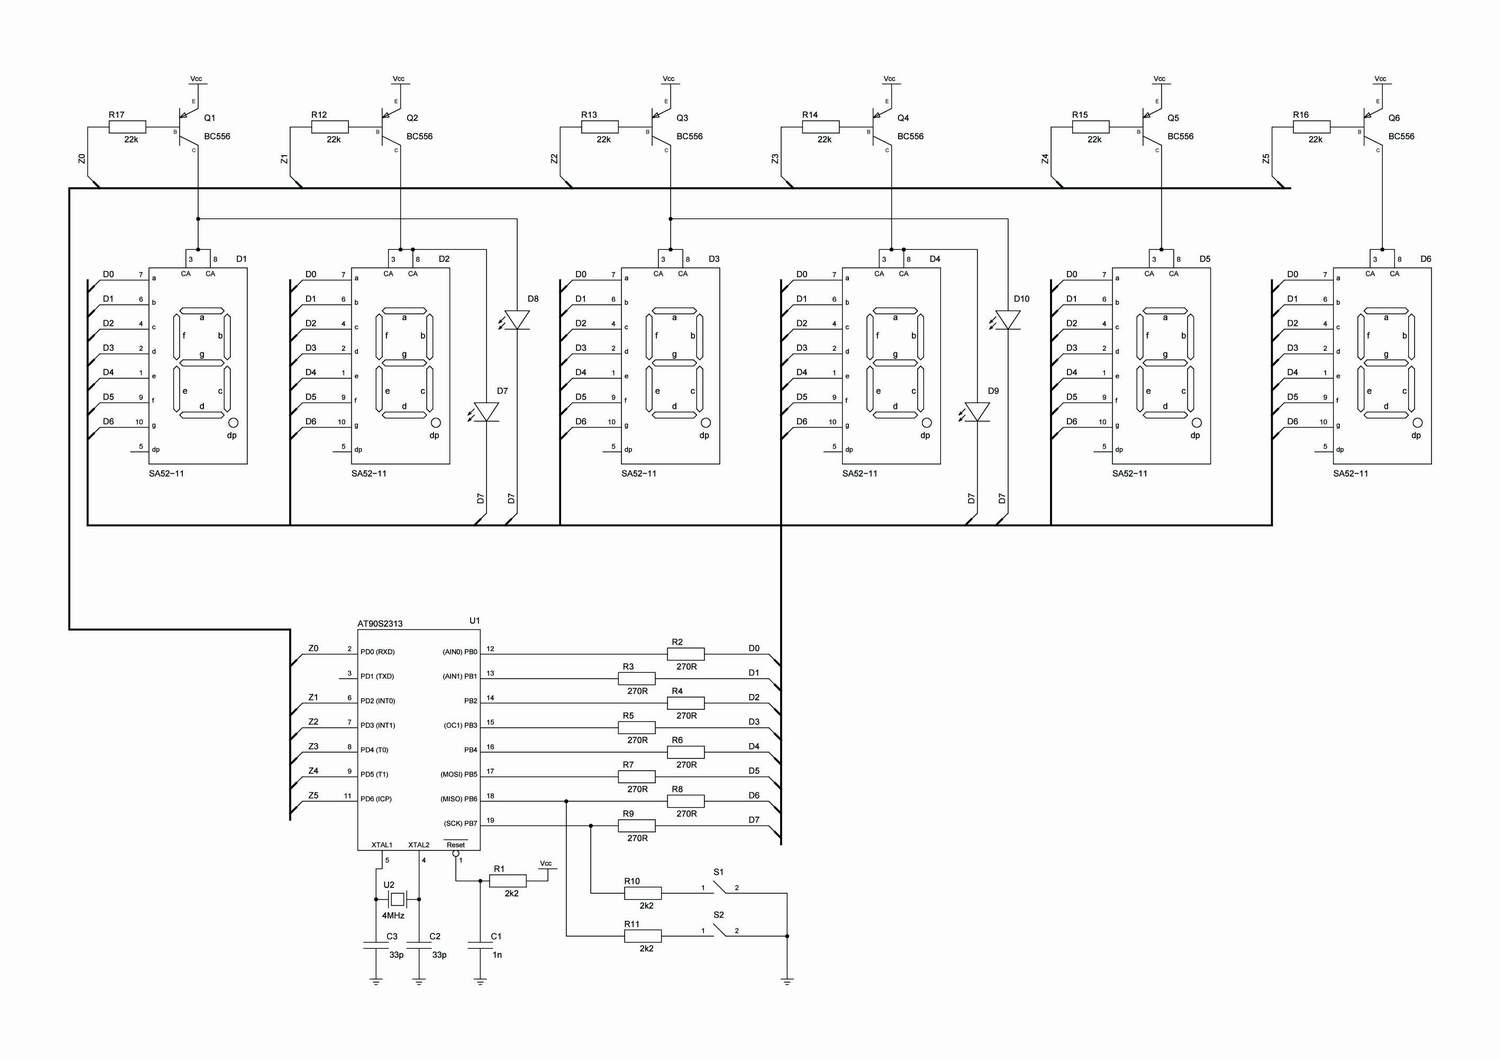 Clock Circuit Page 3 Meter Counter Circuits 7 Segment Diagram Avr Schematic